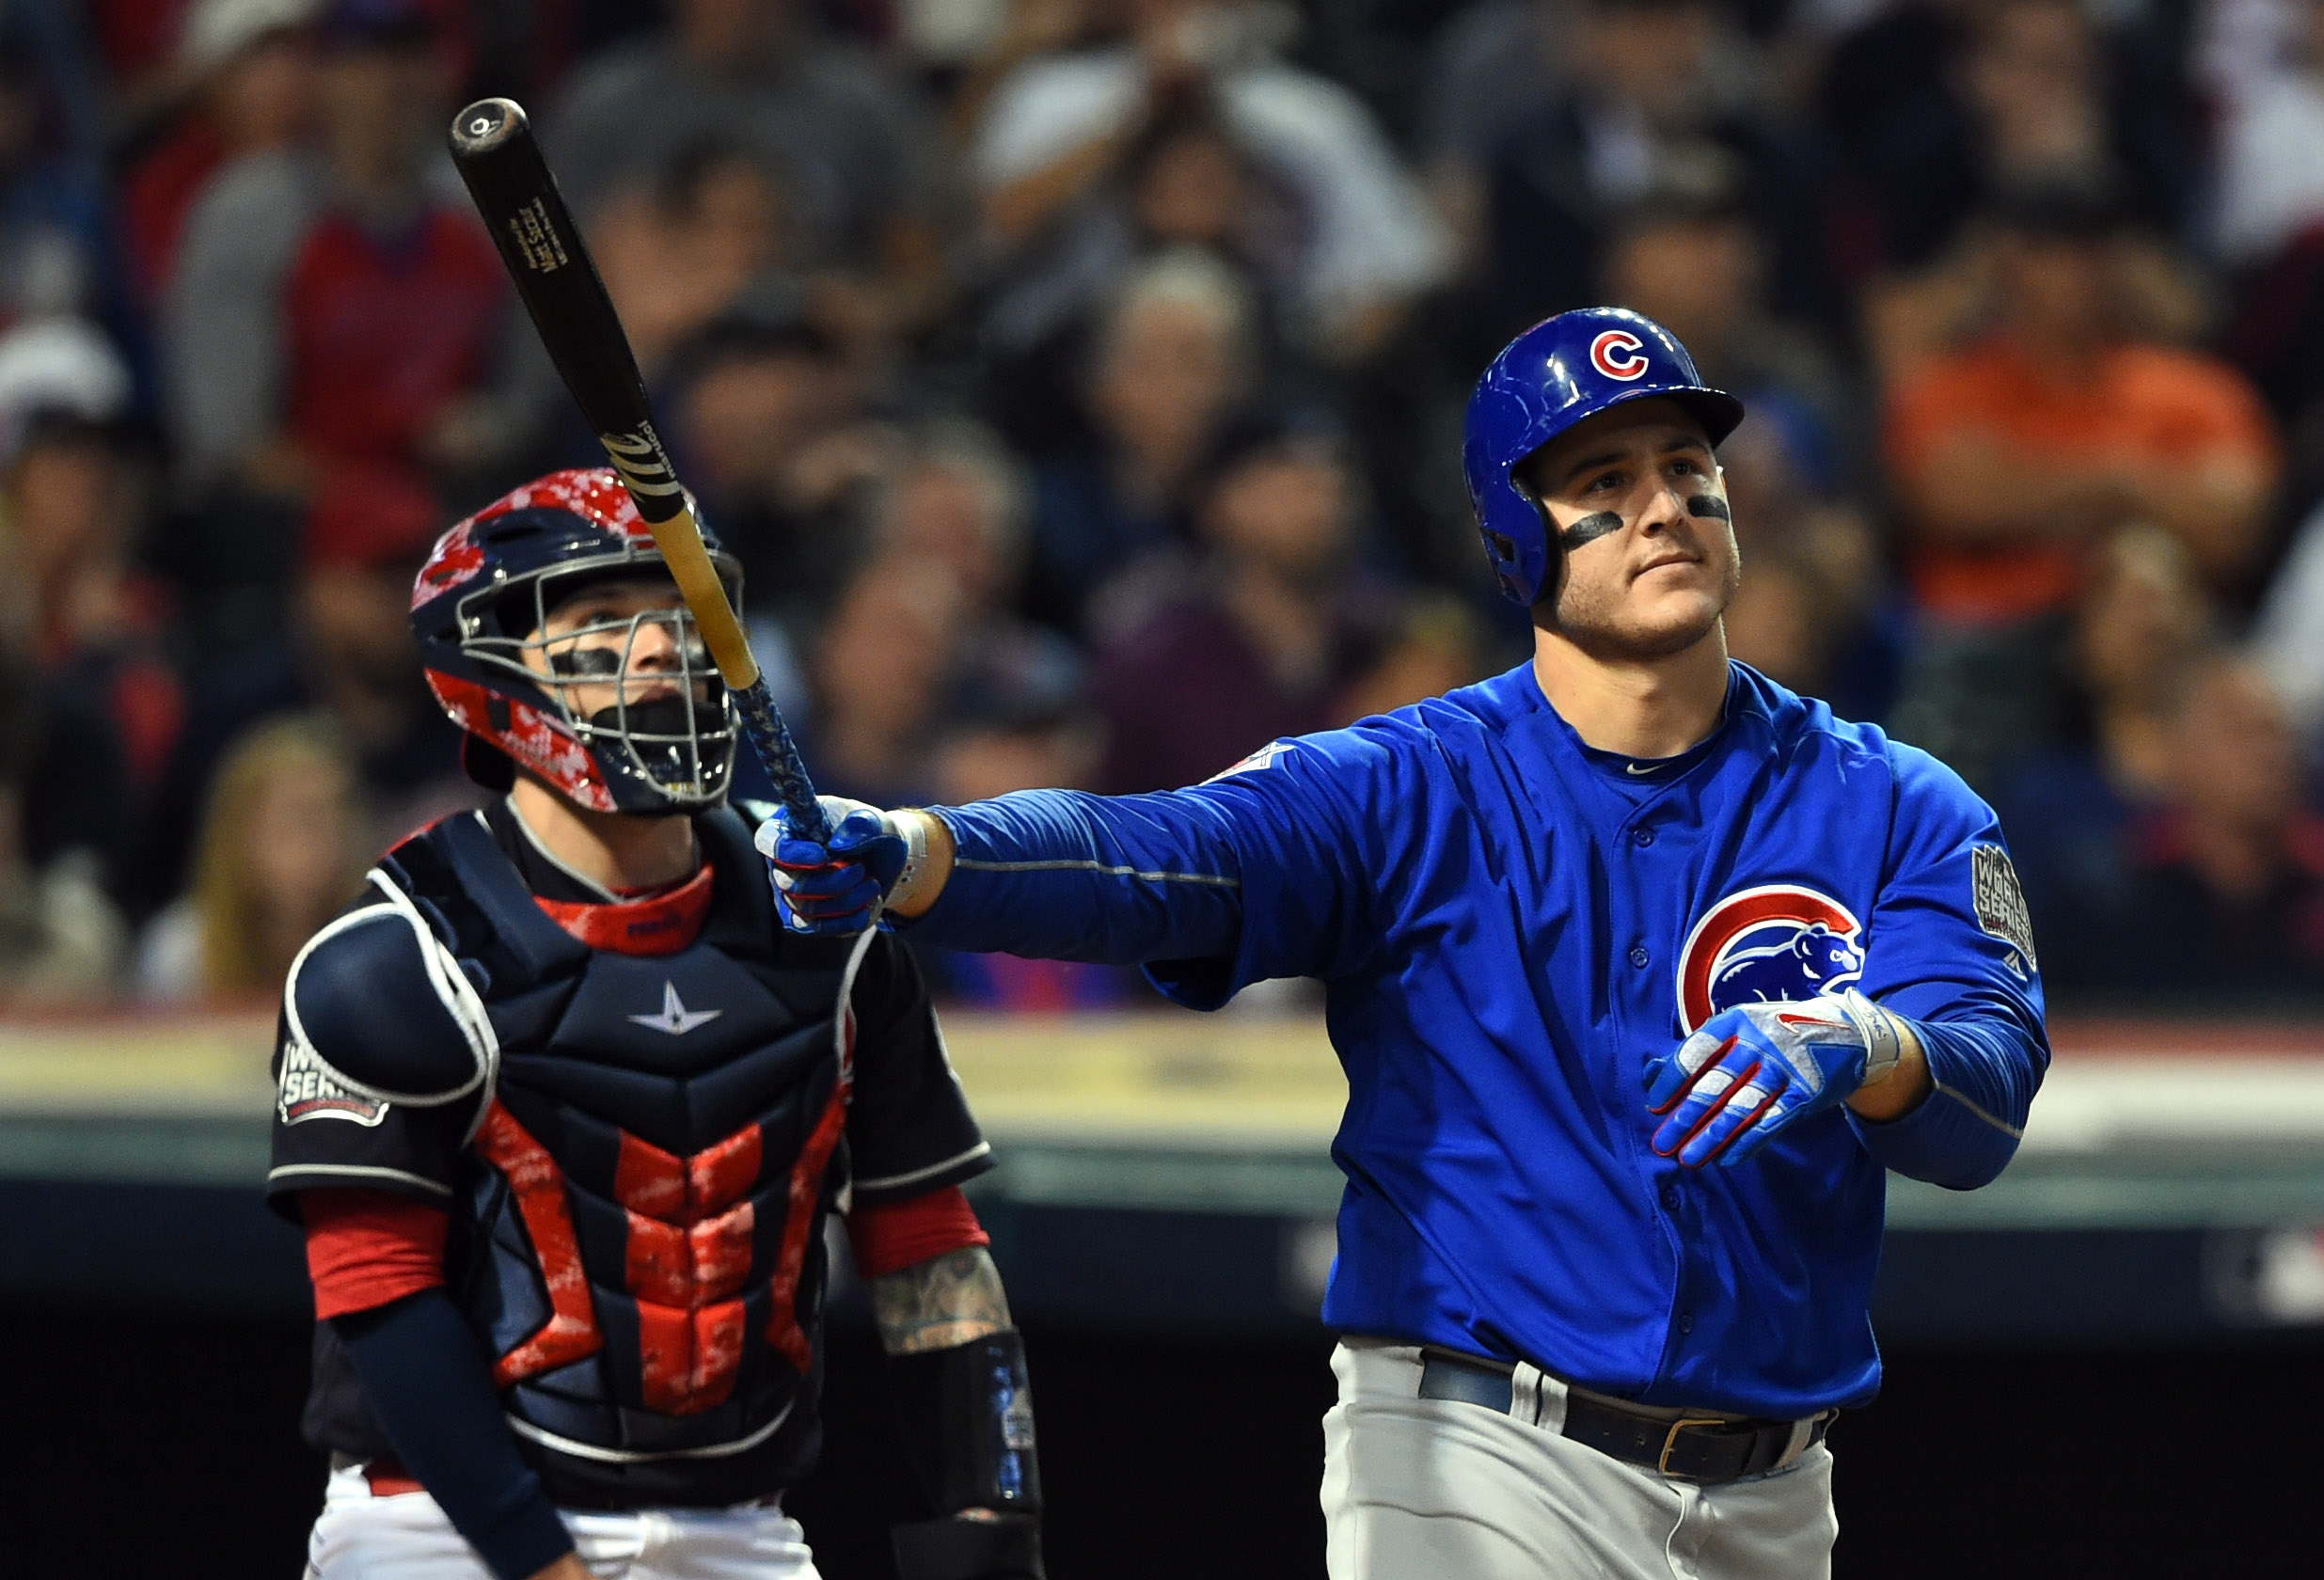 If the Cubs are as calm in Game 7 as Anthony Rizzo is hitting a two-run home run, they should be OK. (Tommy Gilligan/USA TODAY Sports)